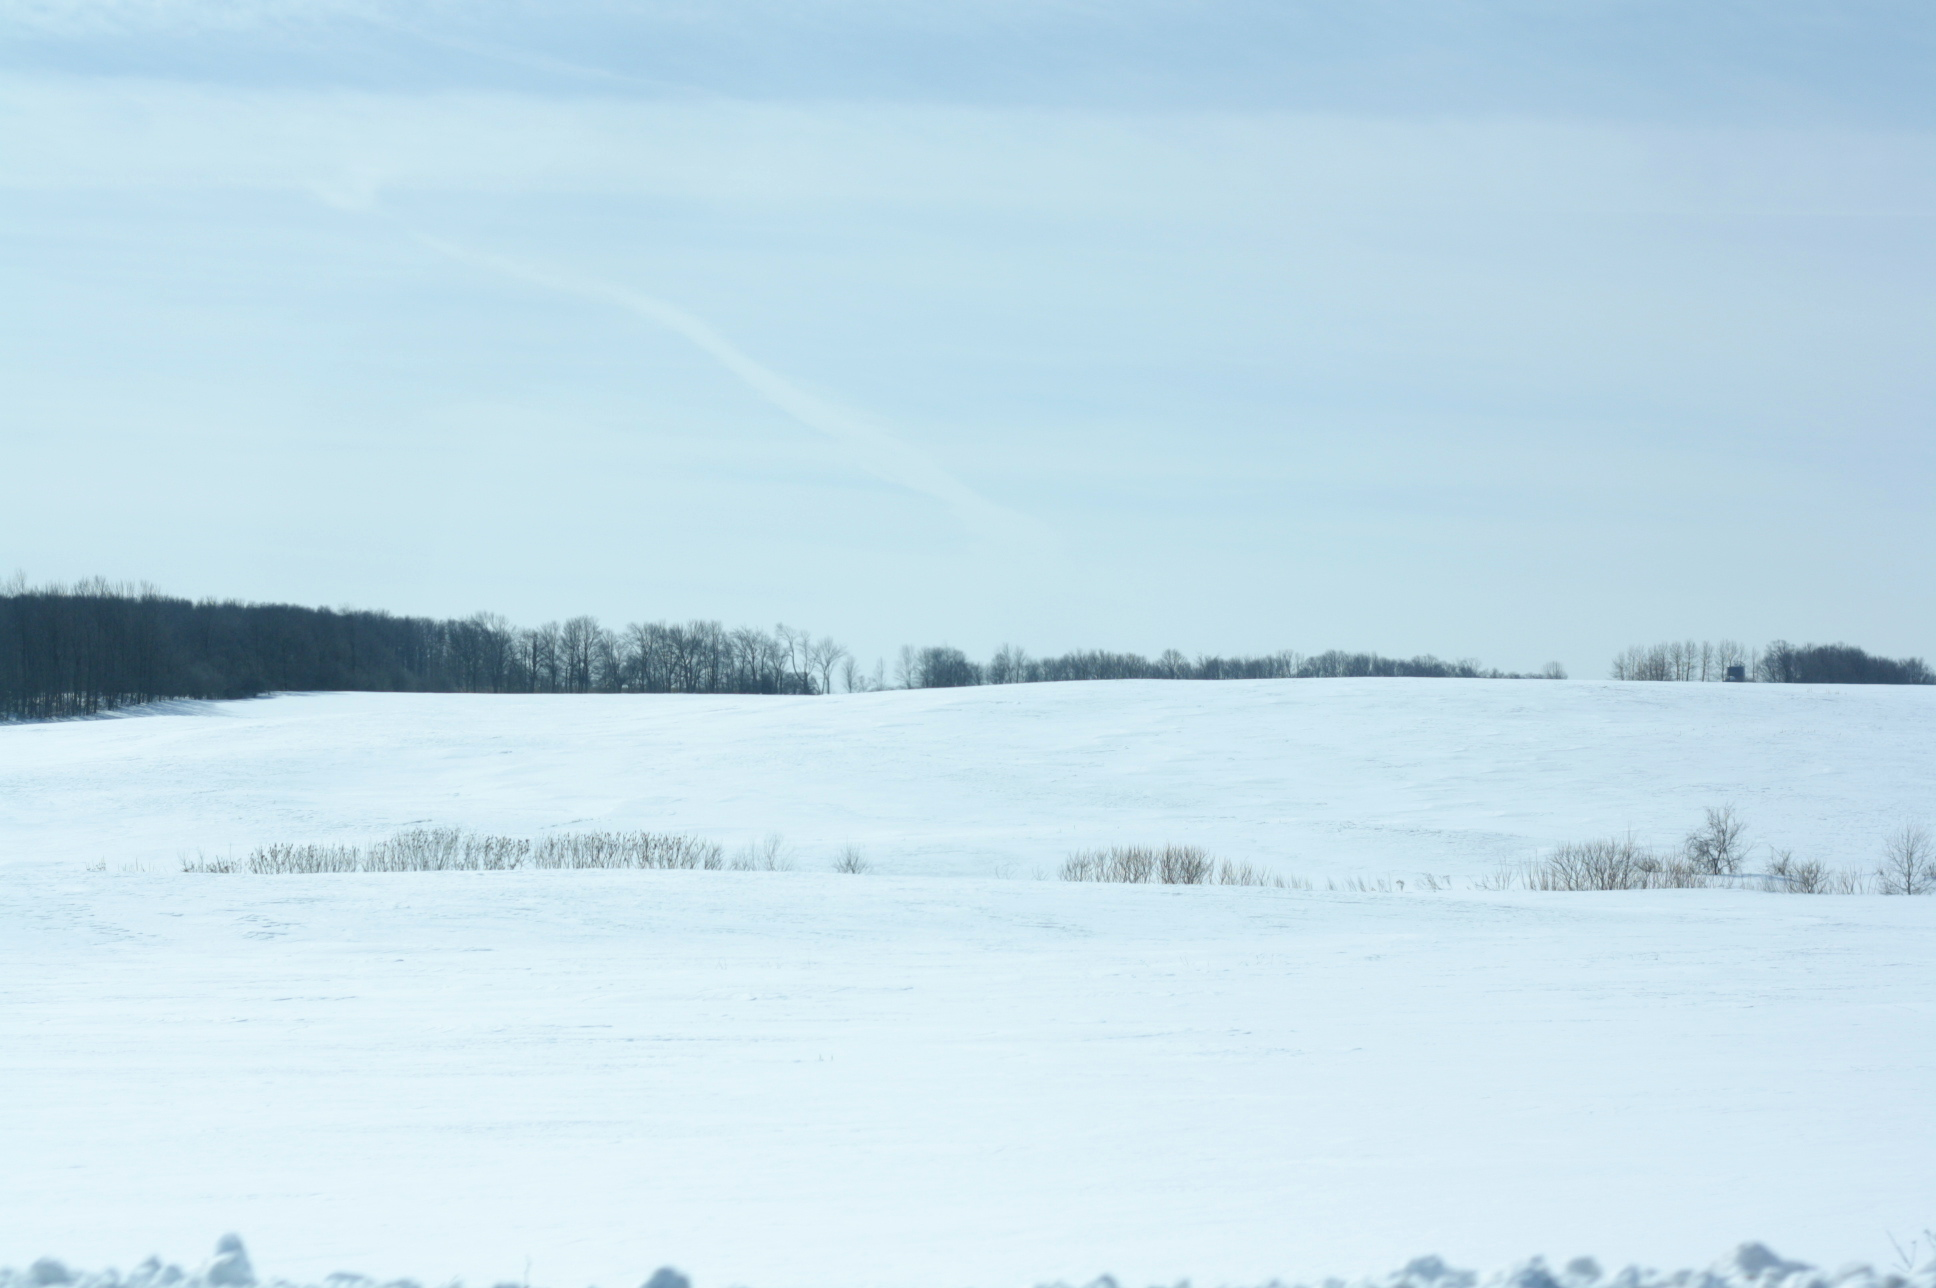 vast-expanse-of-winter.jpg